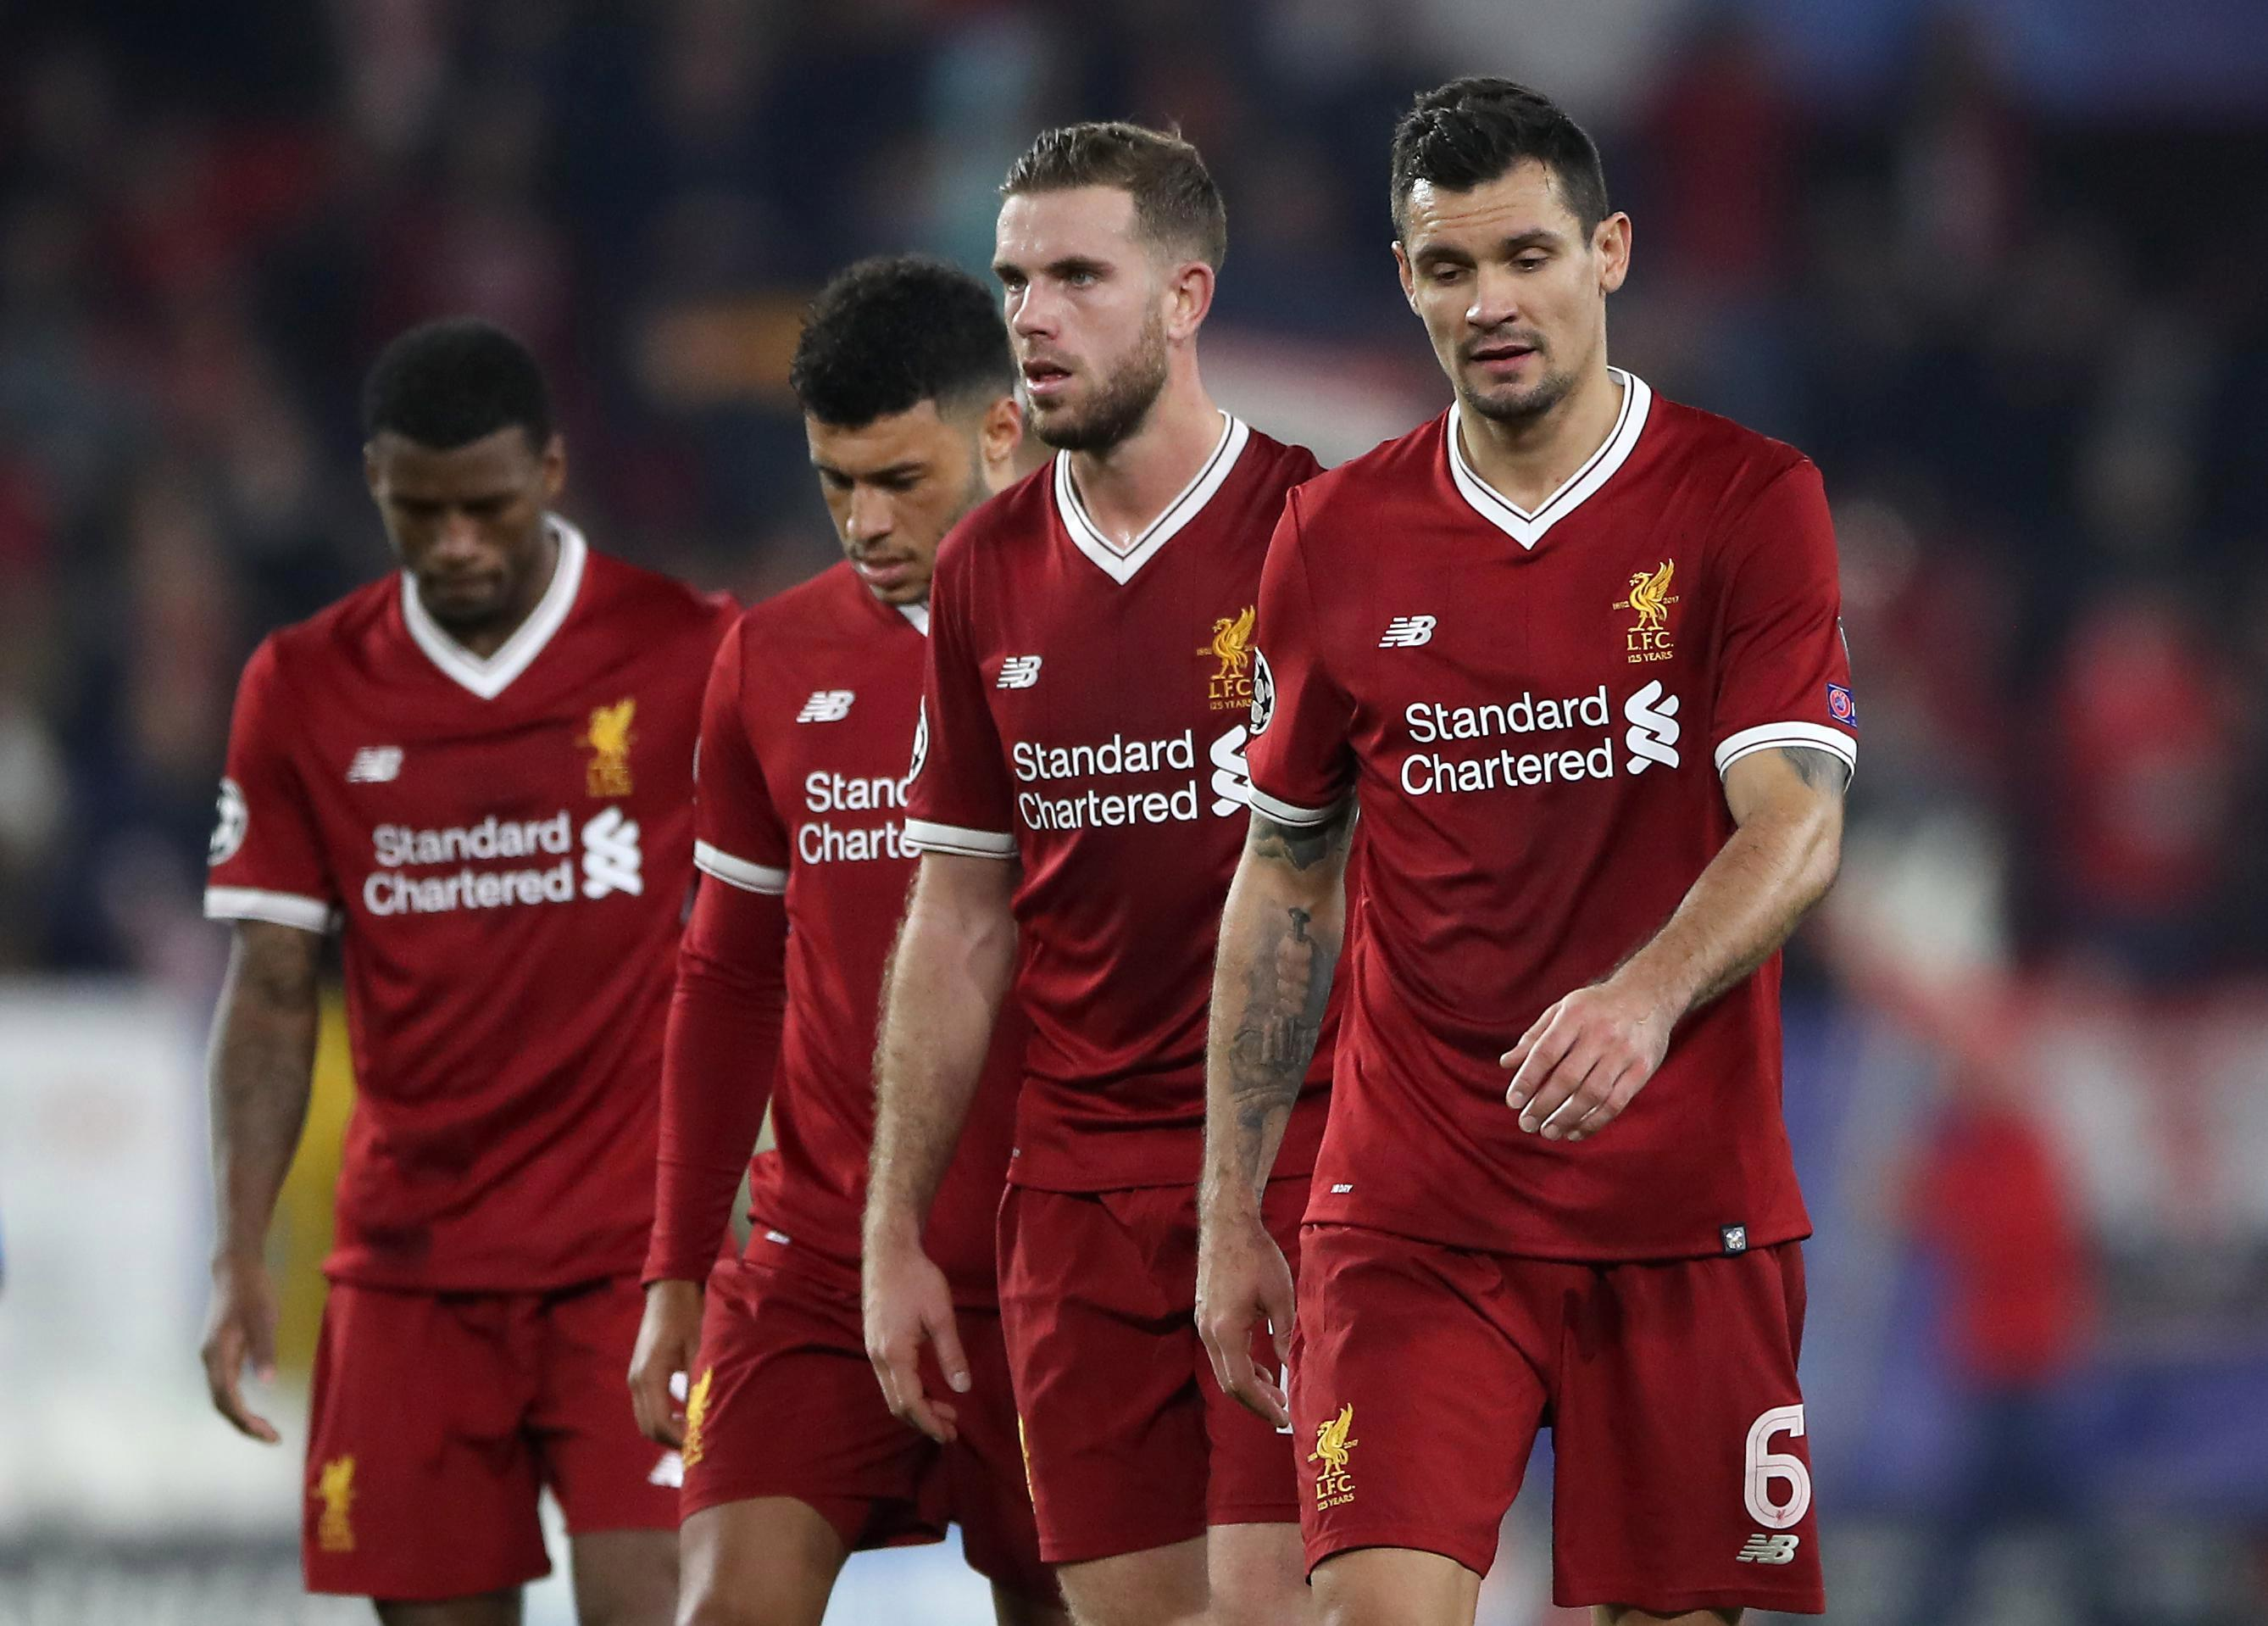 Liverpool ace Dejan Lovren blames bad form on two 'horrific' cash and jewellery raids on home while wife and kids were there